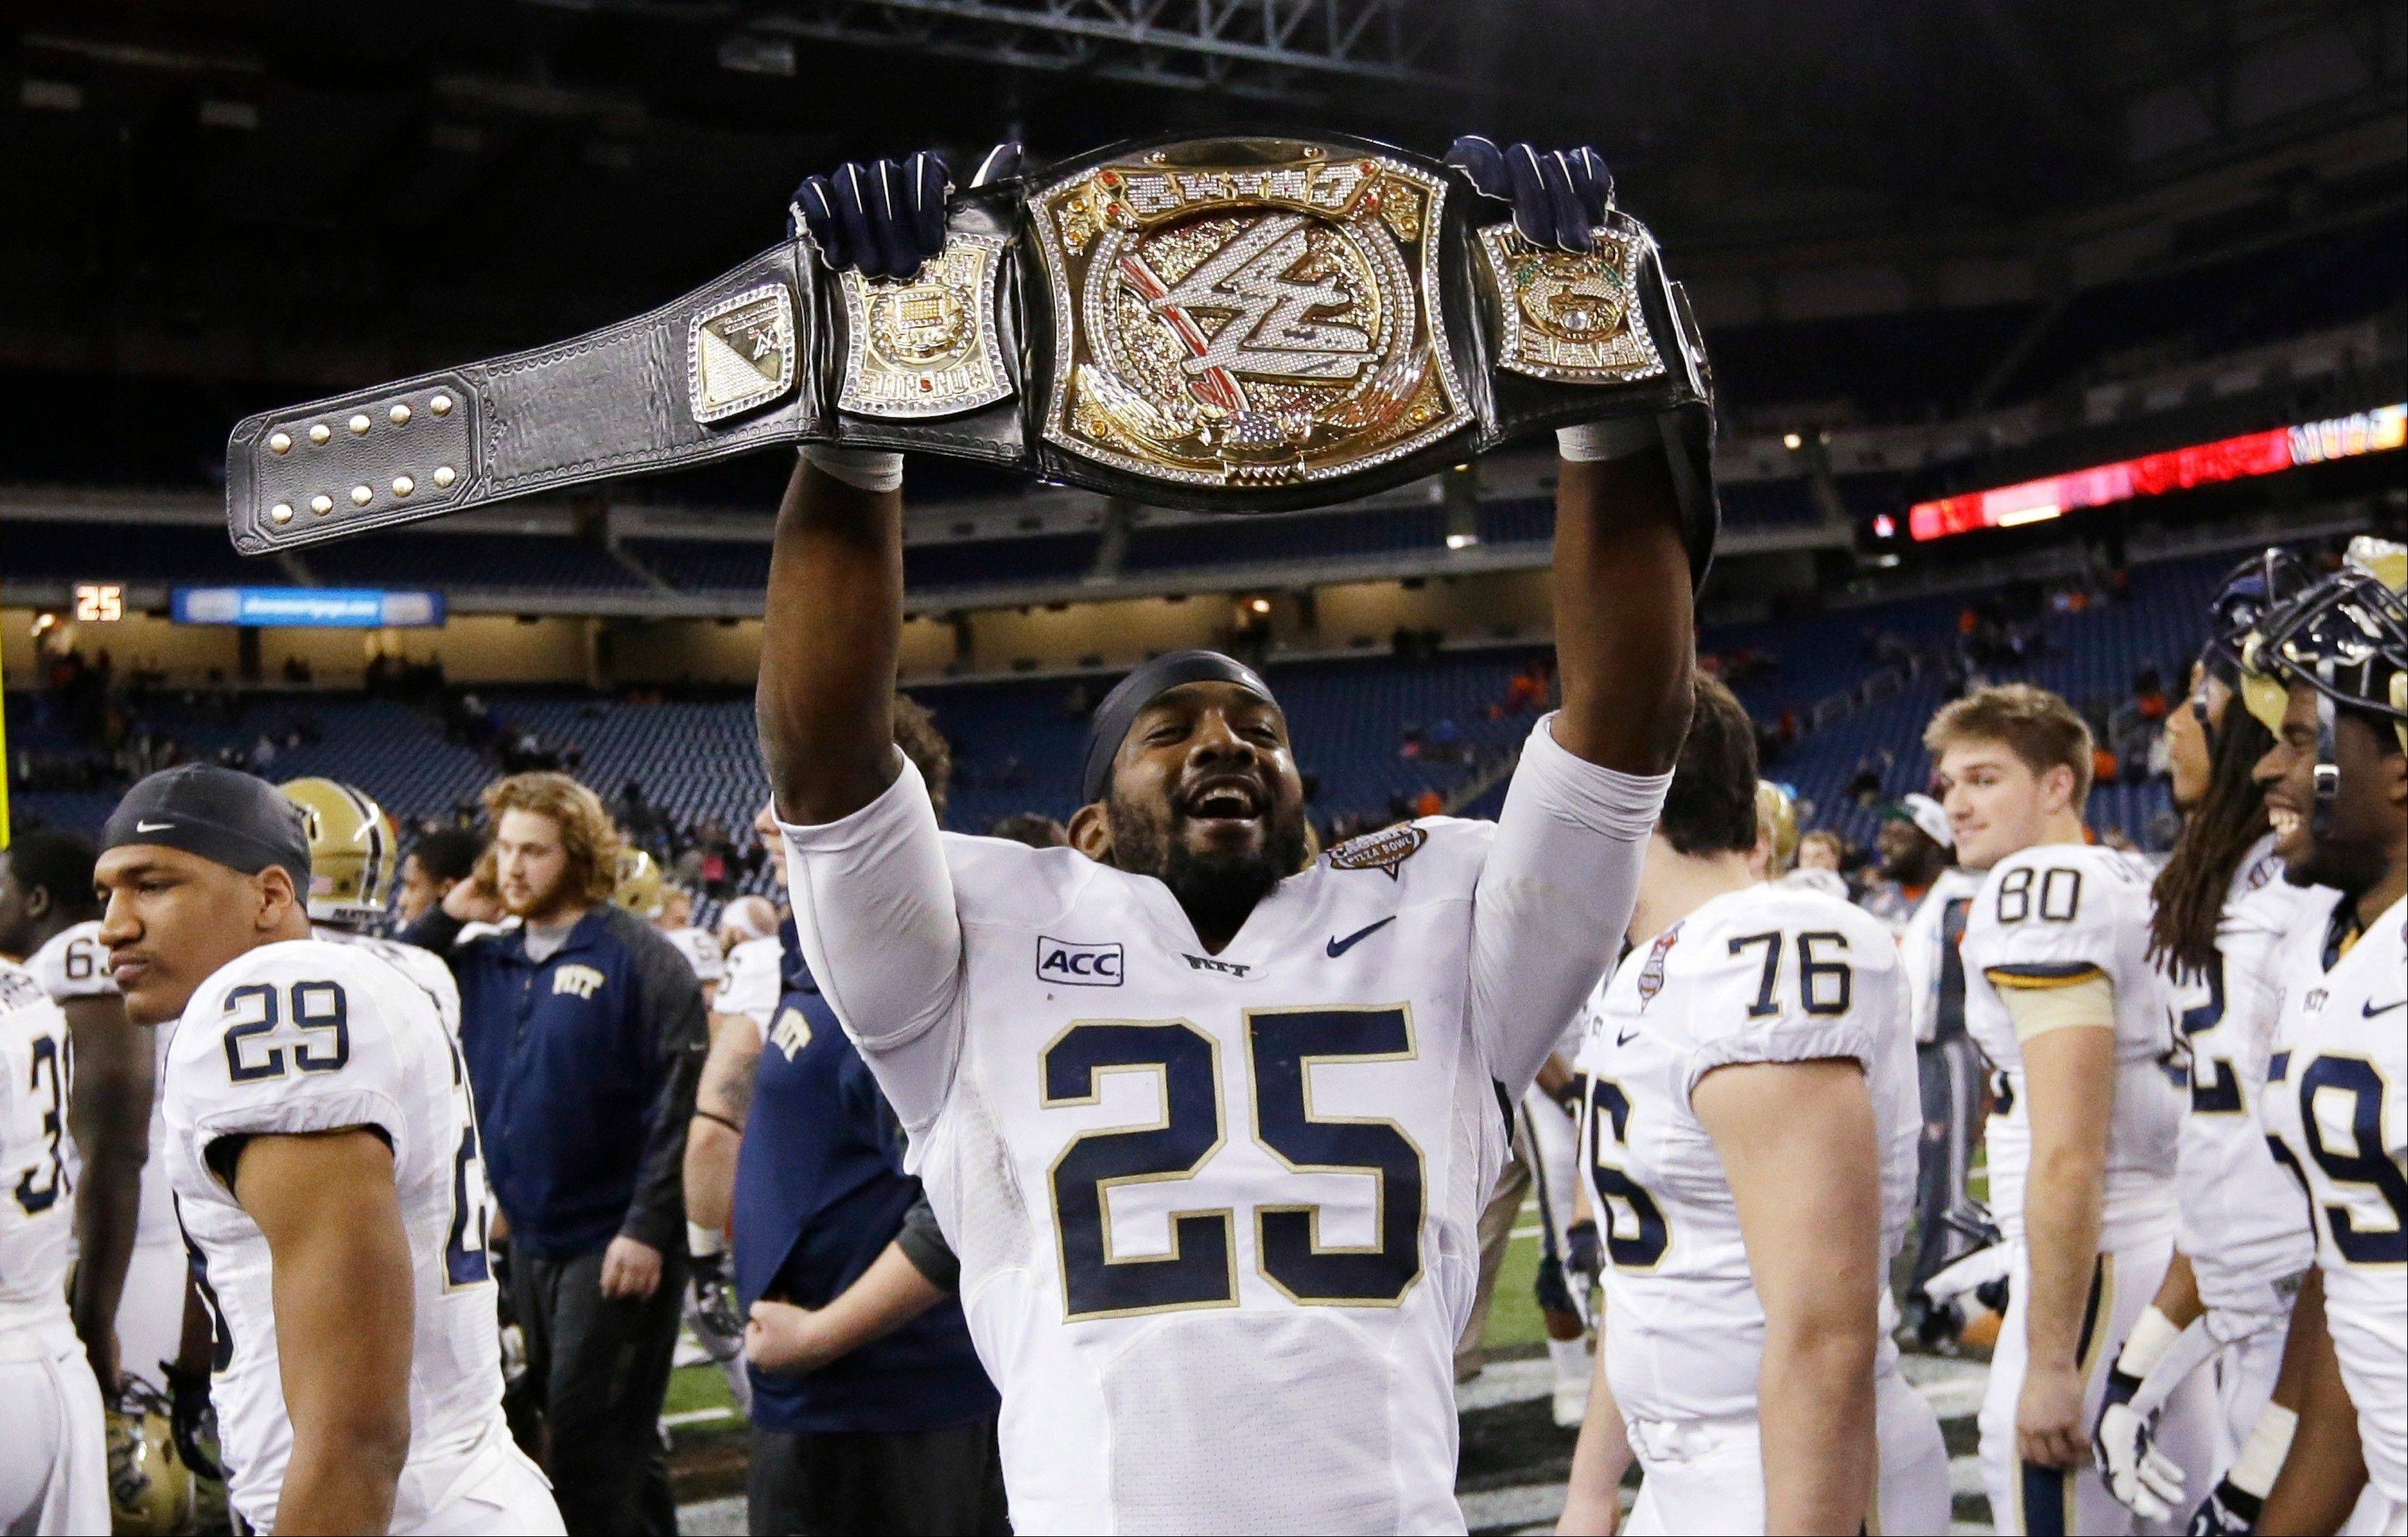 Pittsburgh defensive back Jason Hendricks holds up a wrestling championship belt after the Panthers defeated Bowling Green 30-27 in the Little Caesars Pizza Bowl on Thursday in Detroit.